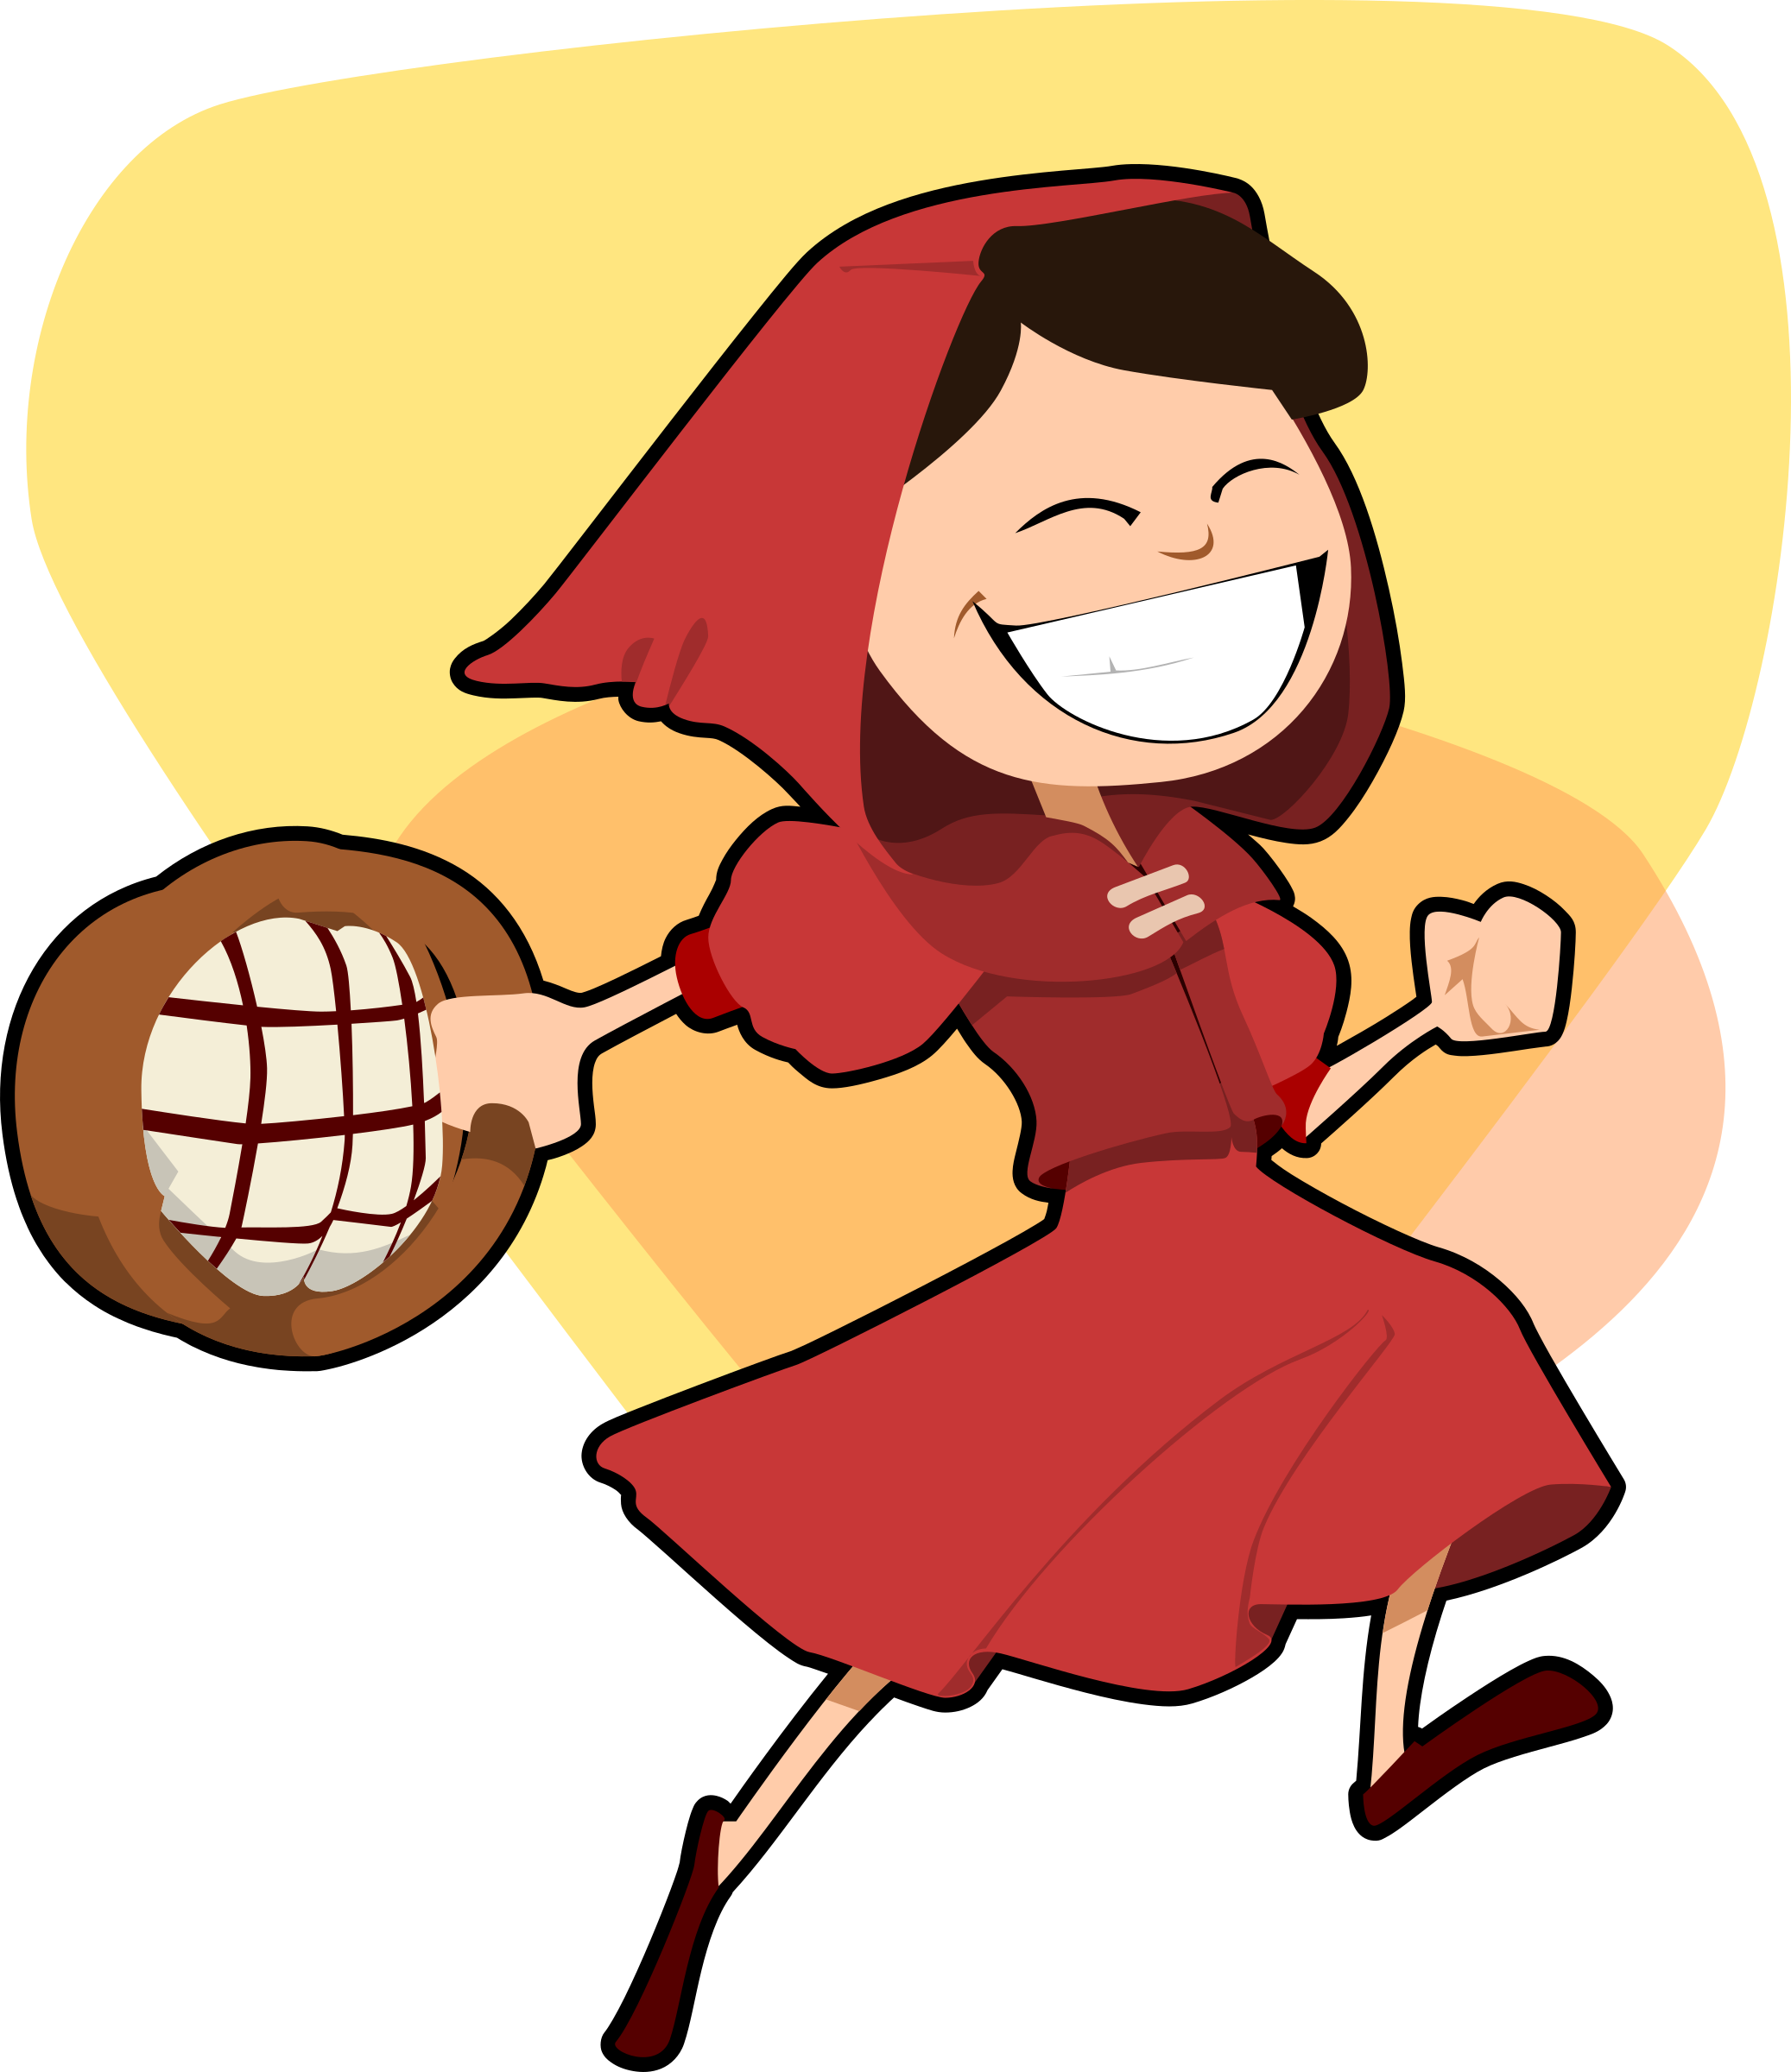 Little red riding hood png. Clipart big image